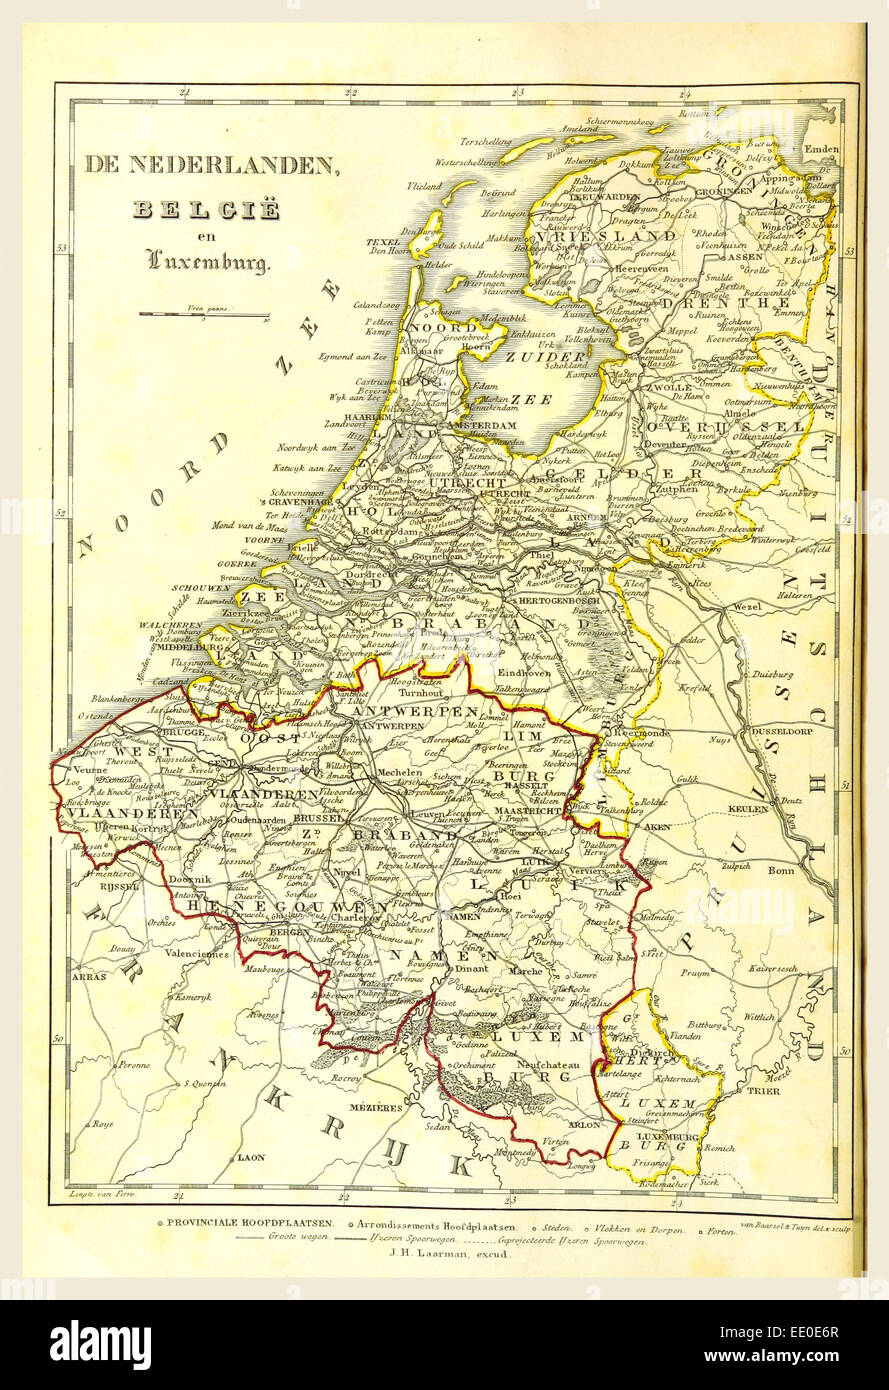 map of the netherlands belgium luxemburg 19th century engraving